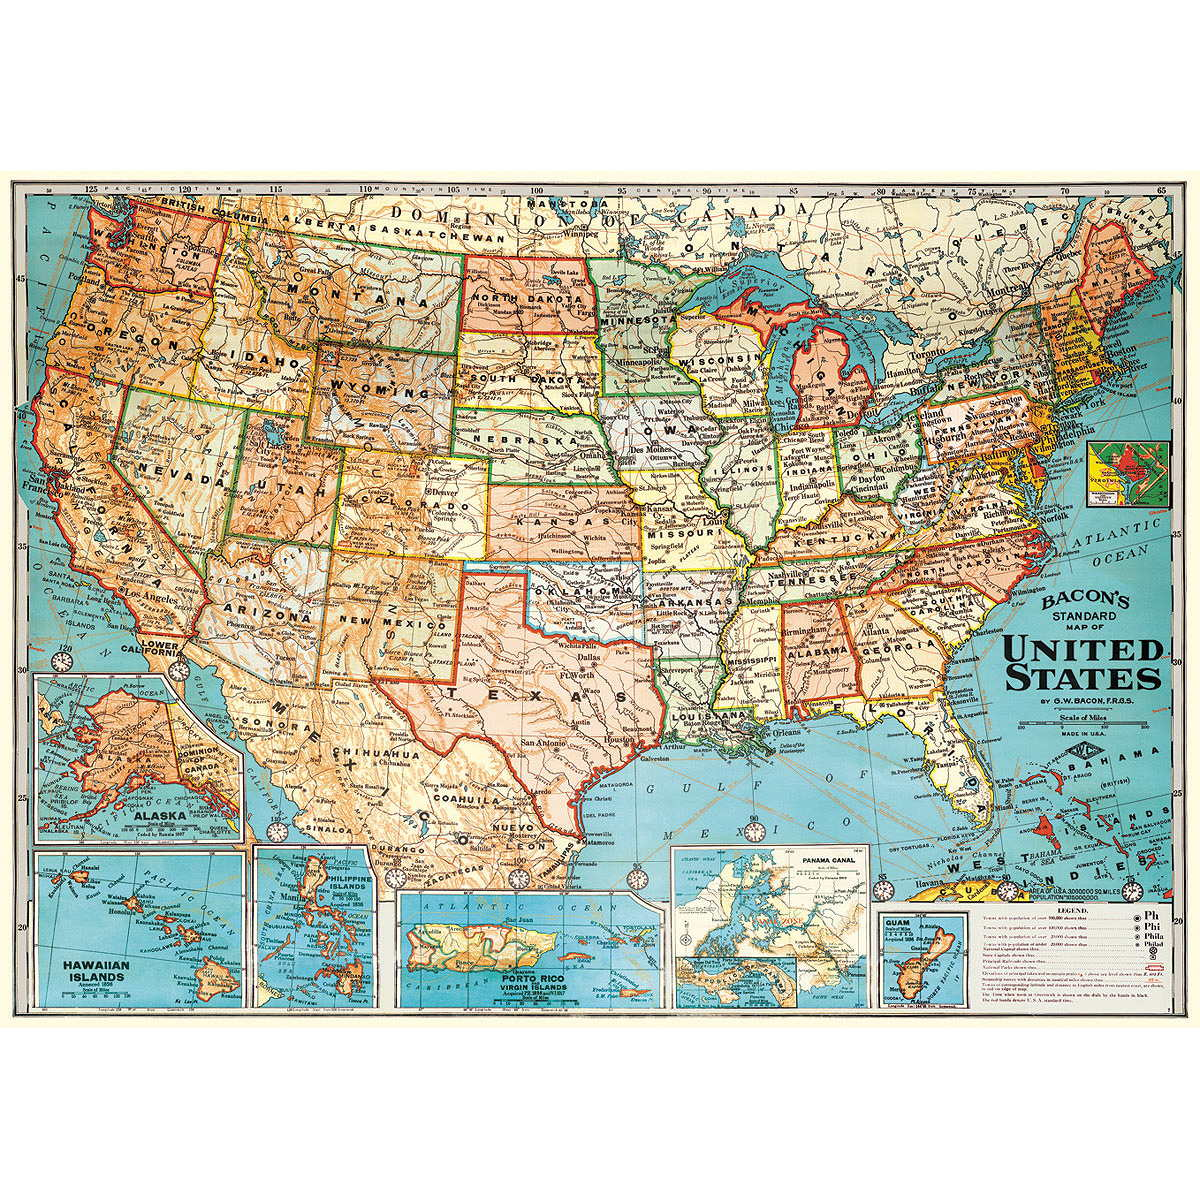 United States Travel Map Poster Vintage Style Paper - Vintage los angeles map poster